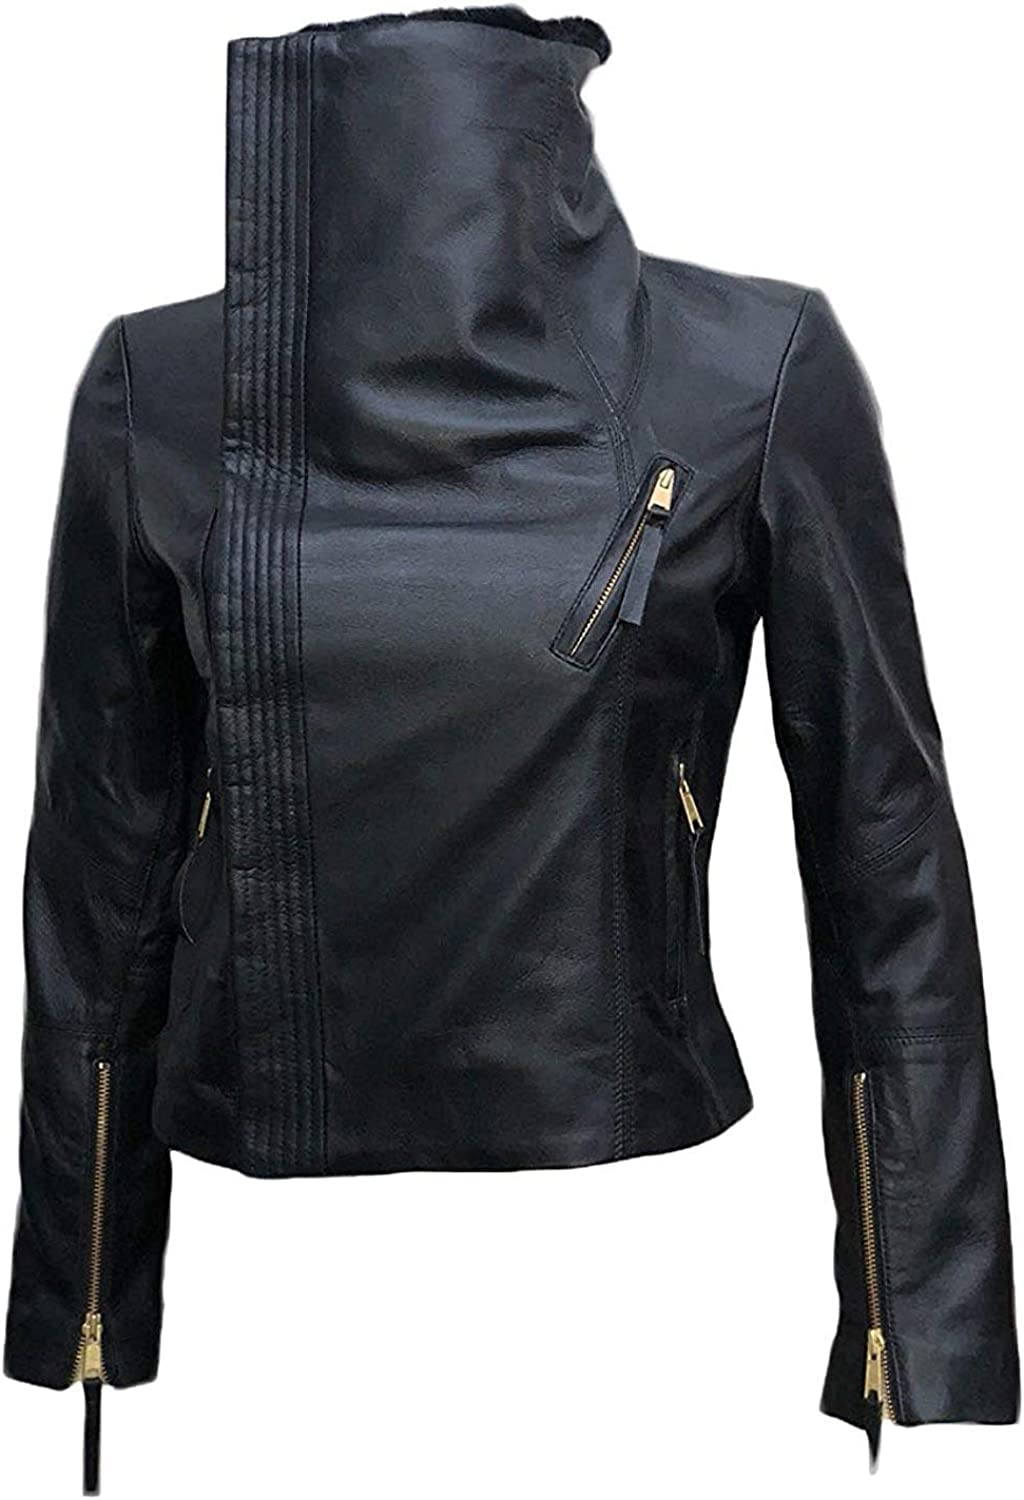 Gal Gadot Black Ladies Leather Jacket for Womens TrendzSetterz Women Black Leather Jacket